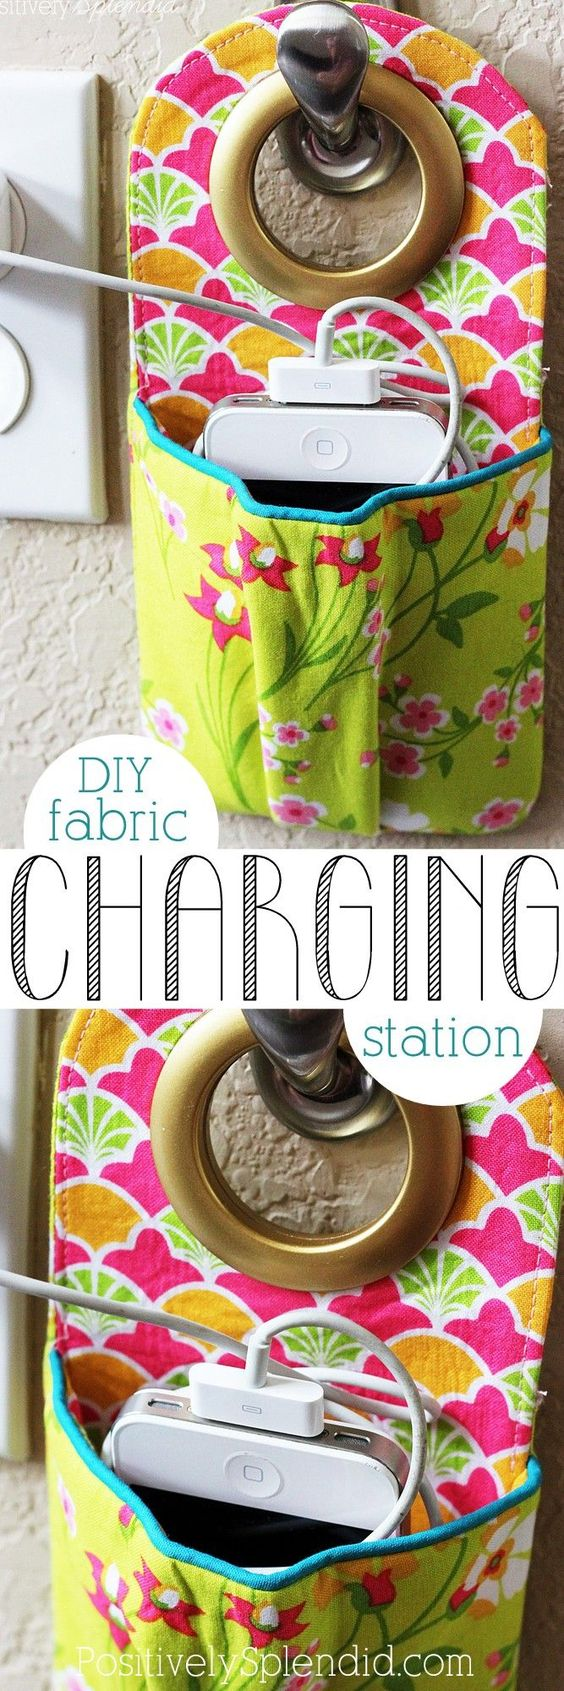 Hanging phone charging station sewing pattern and tutorial. This is such a great idea to keep a phone safe and cords contained!: Phone Holder, Sewing Projects, Phone Charging Stations, Station Sewing, Sewing Idea, Diy Fabric Charging Station, Crafts Sewing, Diy Phone Charging Station, Sewing Patterns